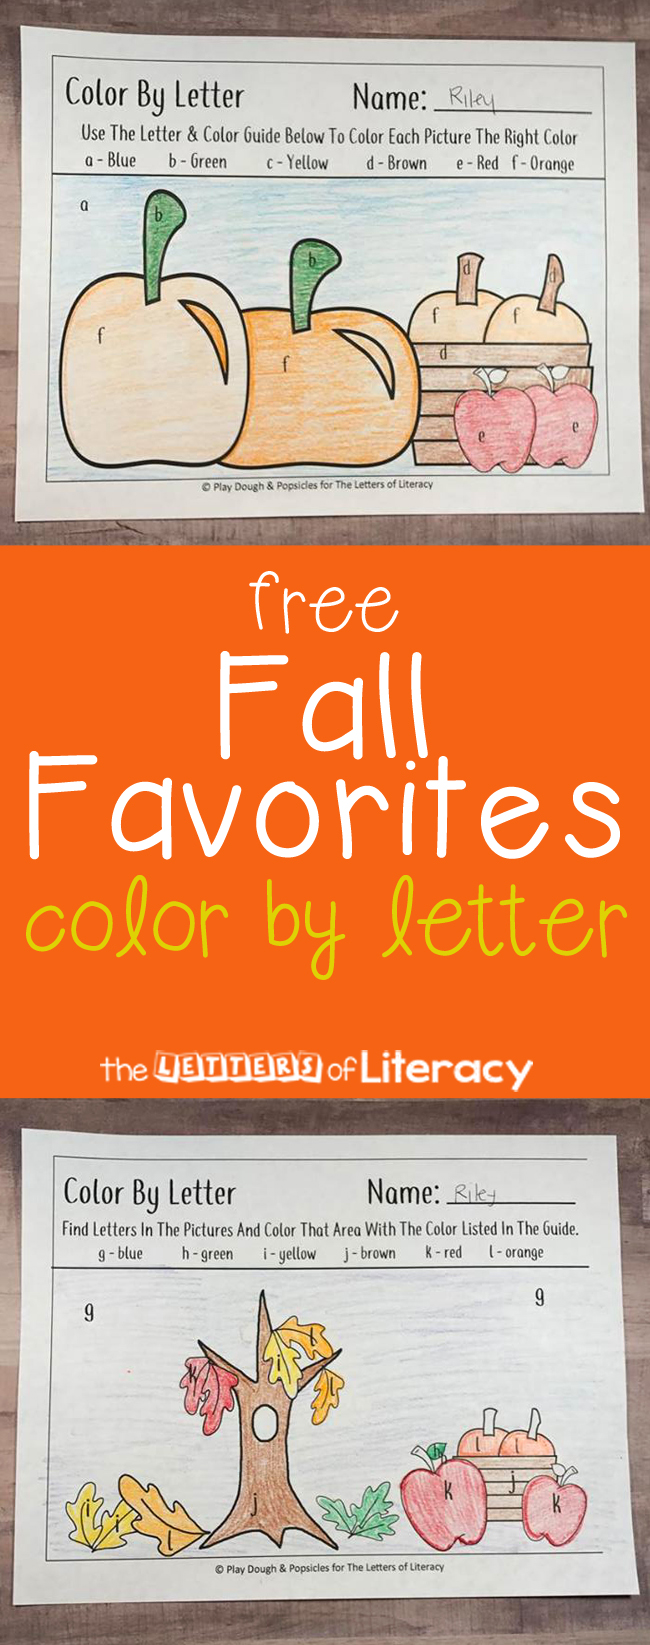 Free Fall Favorites Color By Letter Printables for letter recognition fun